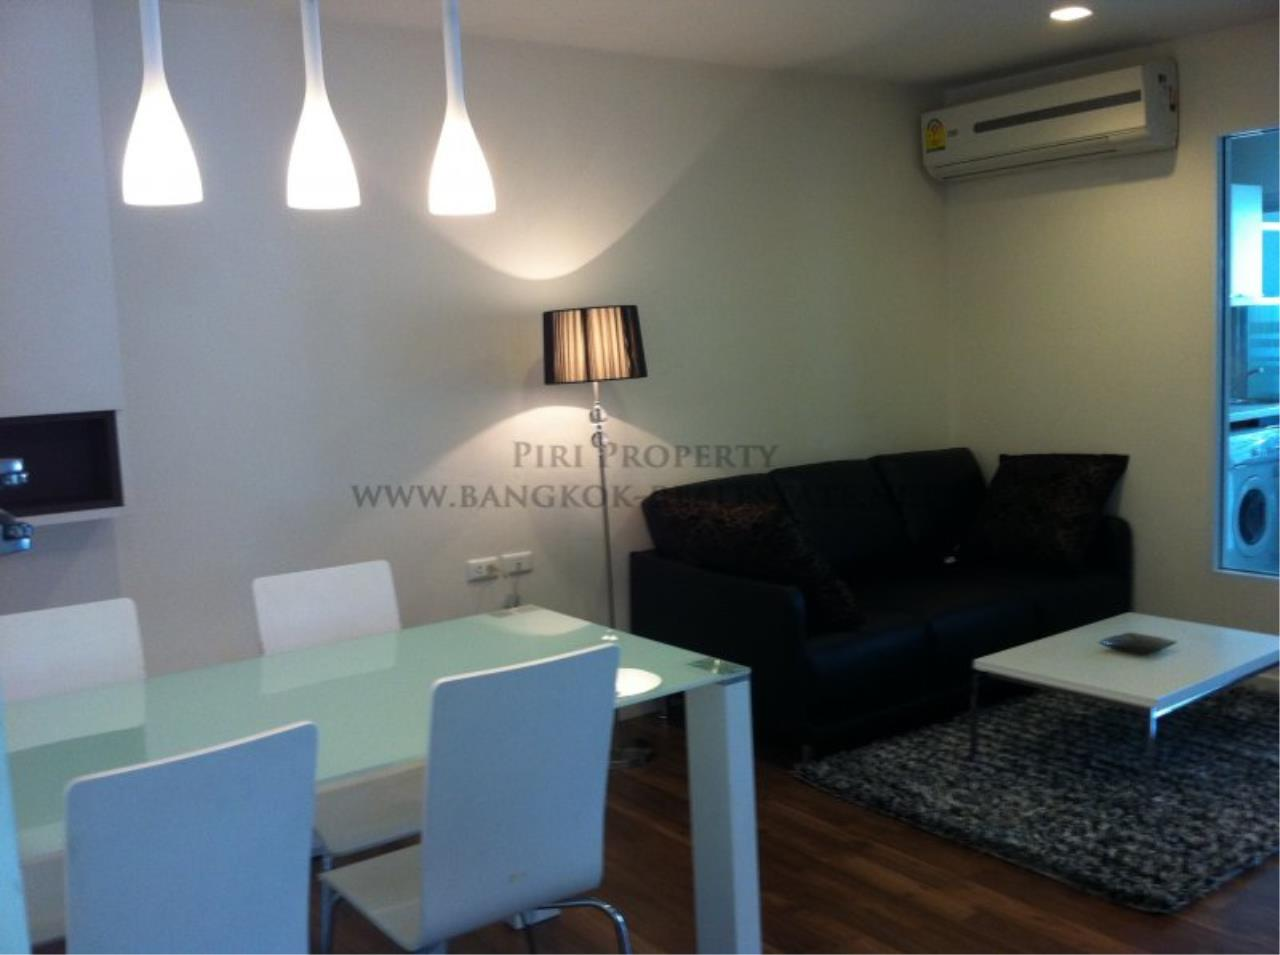 Piri Property Agency's The Room 79 - 1 Bedroom with Home Office or additional Study Room 3